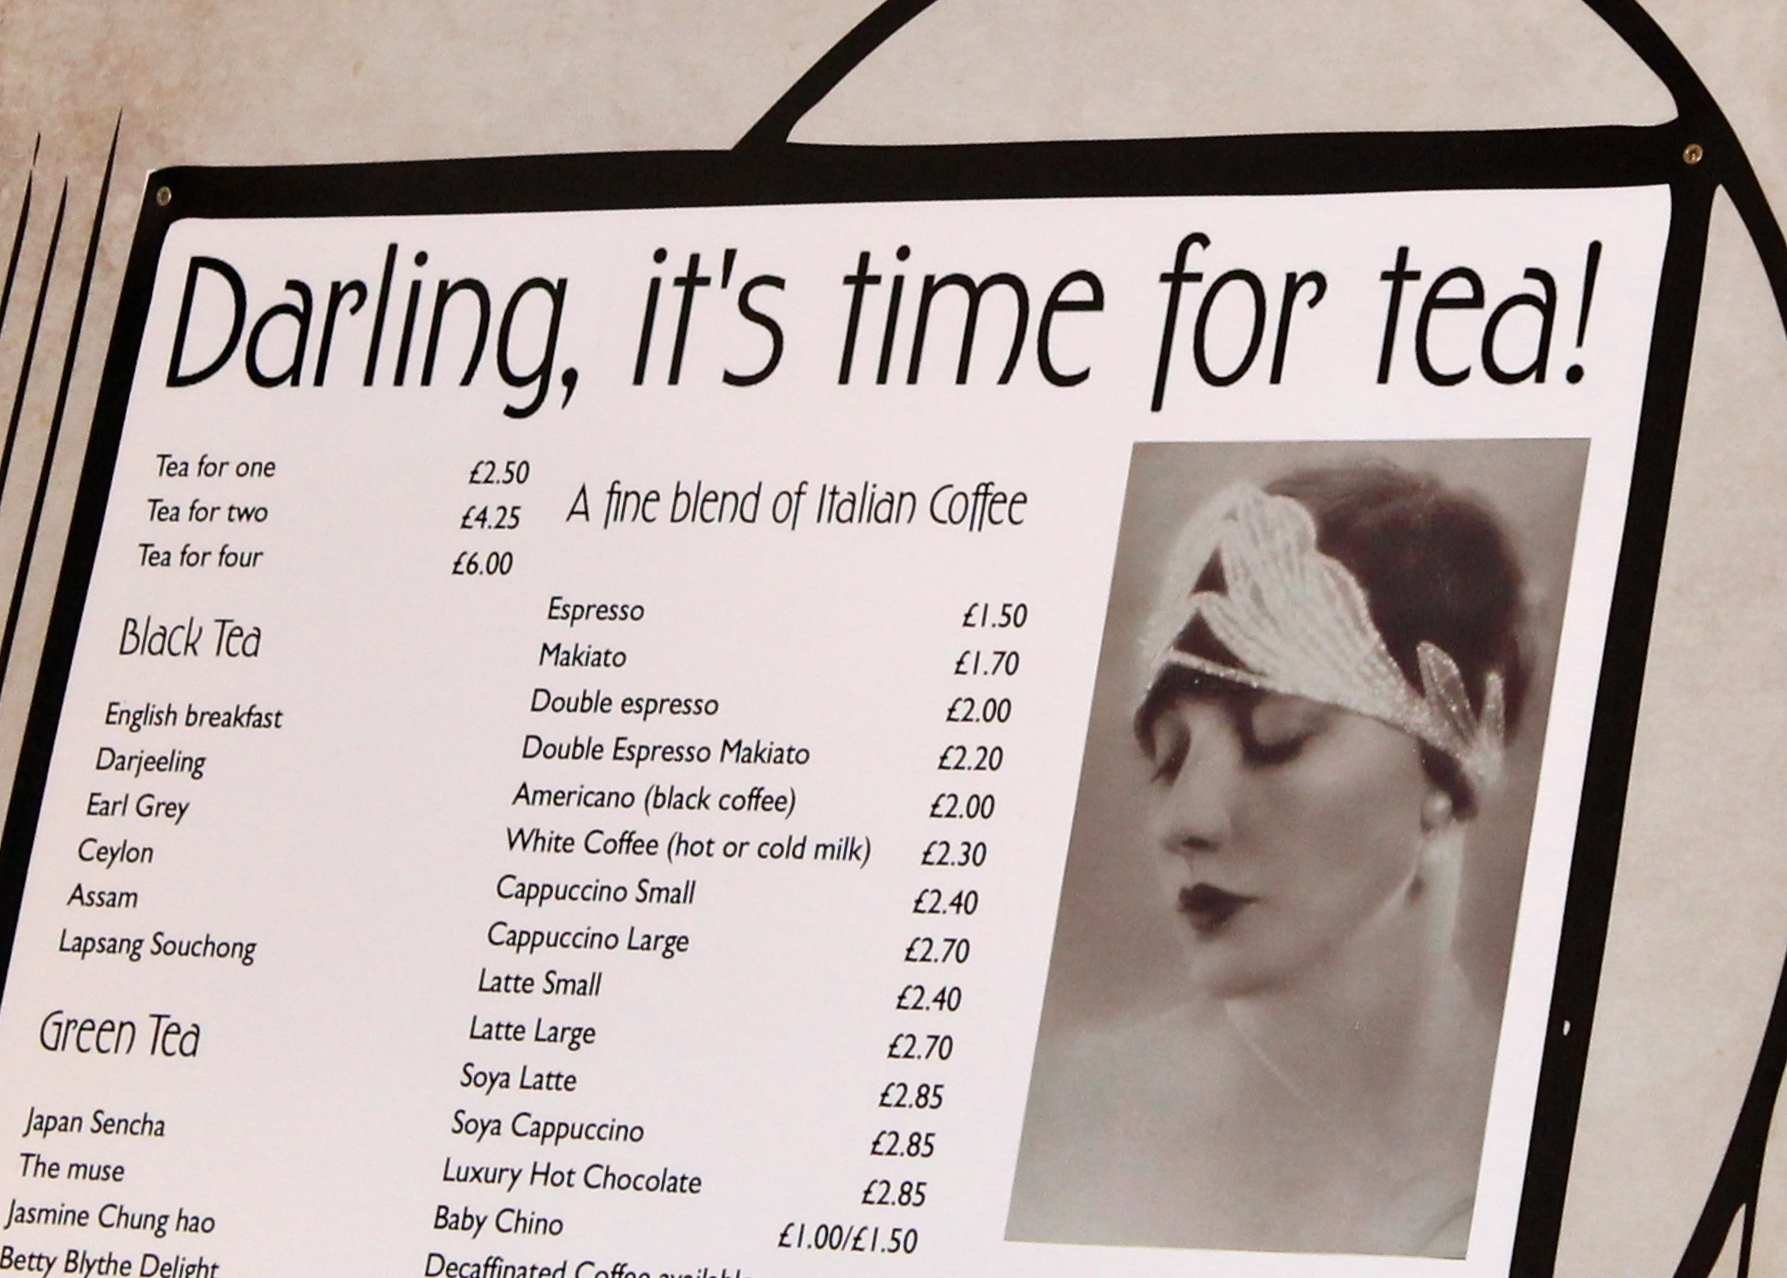 Darling It's Time for Tea!